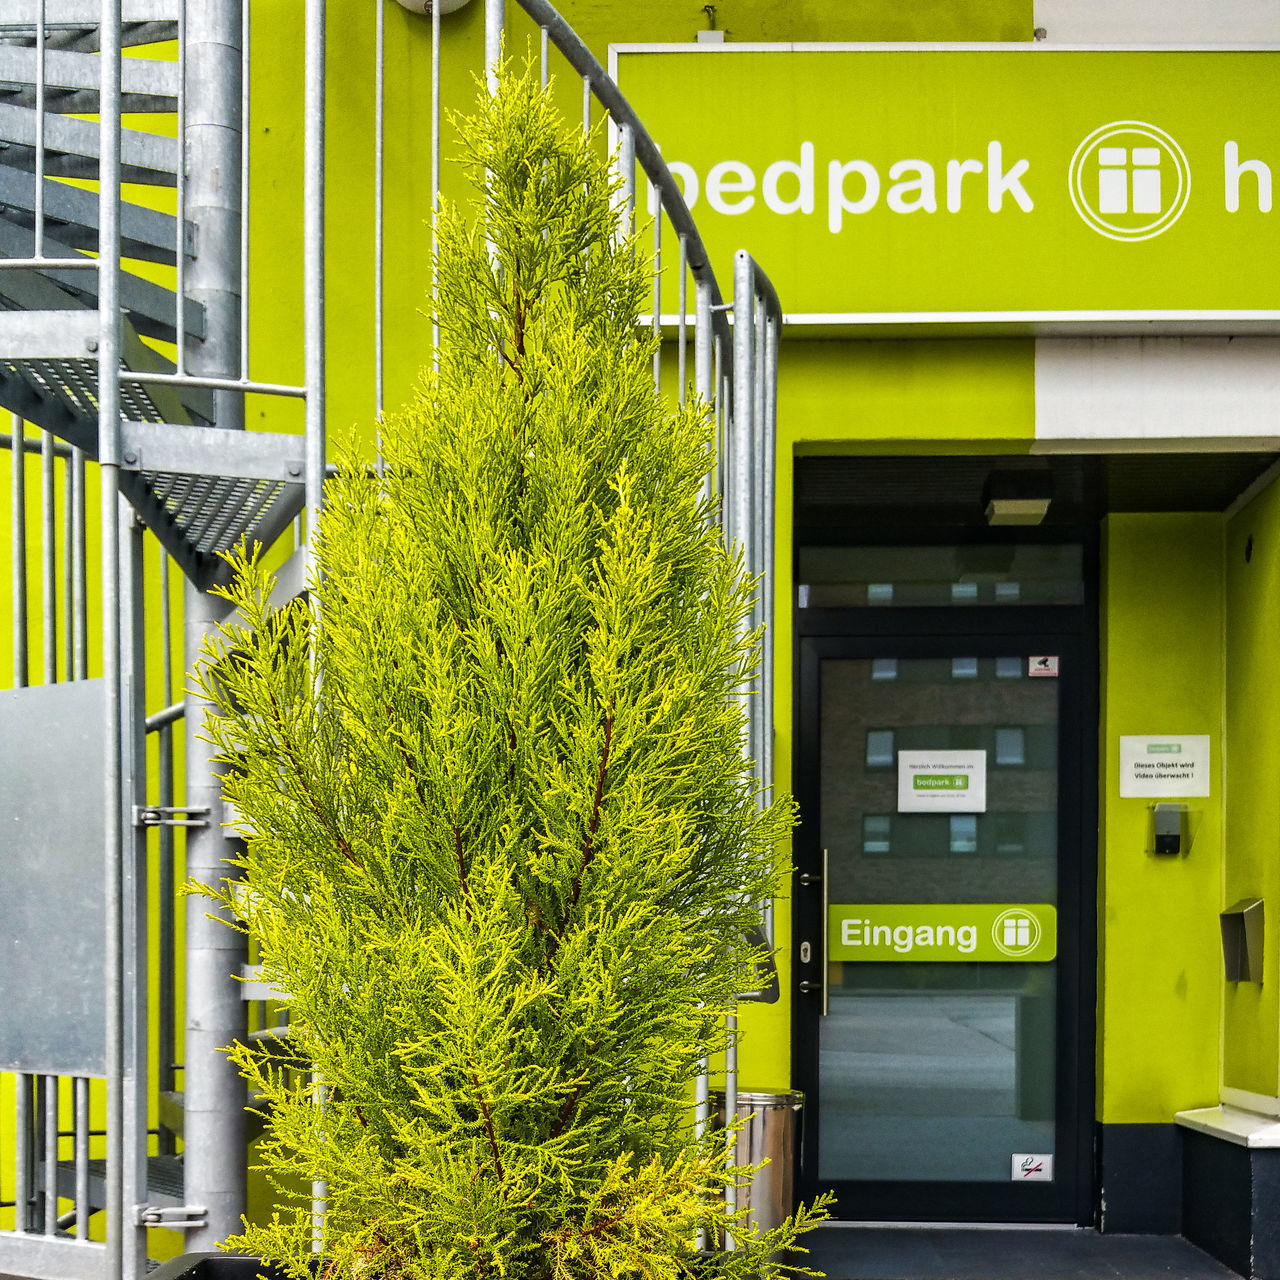 Koryphäe Architecture Building Exterior Built Structure Close-up Communication Day Door Entrance Exit Sign Green Wall Handy Photo Hotel House Colour Koryphäe Modern Architecture No People Outdoors Plant Spiral Stairs Text